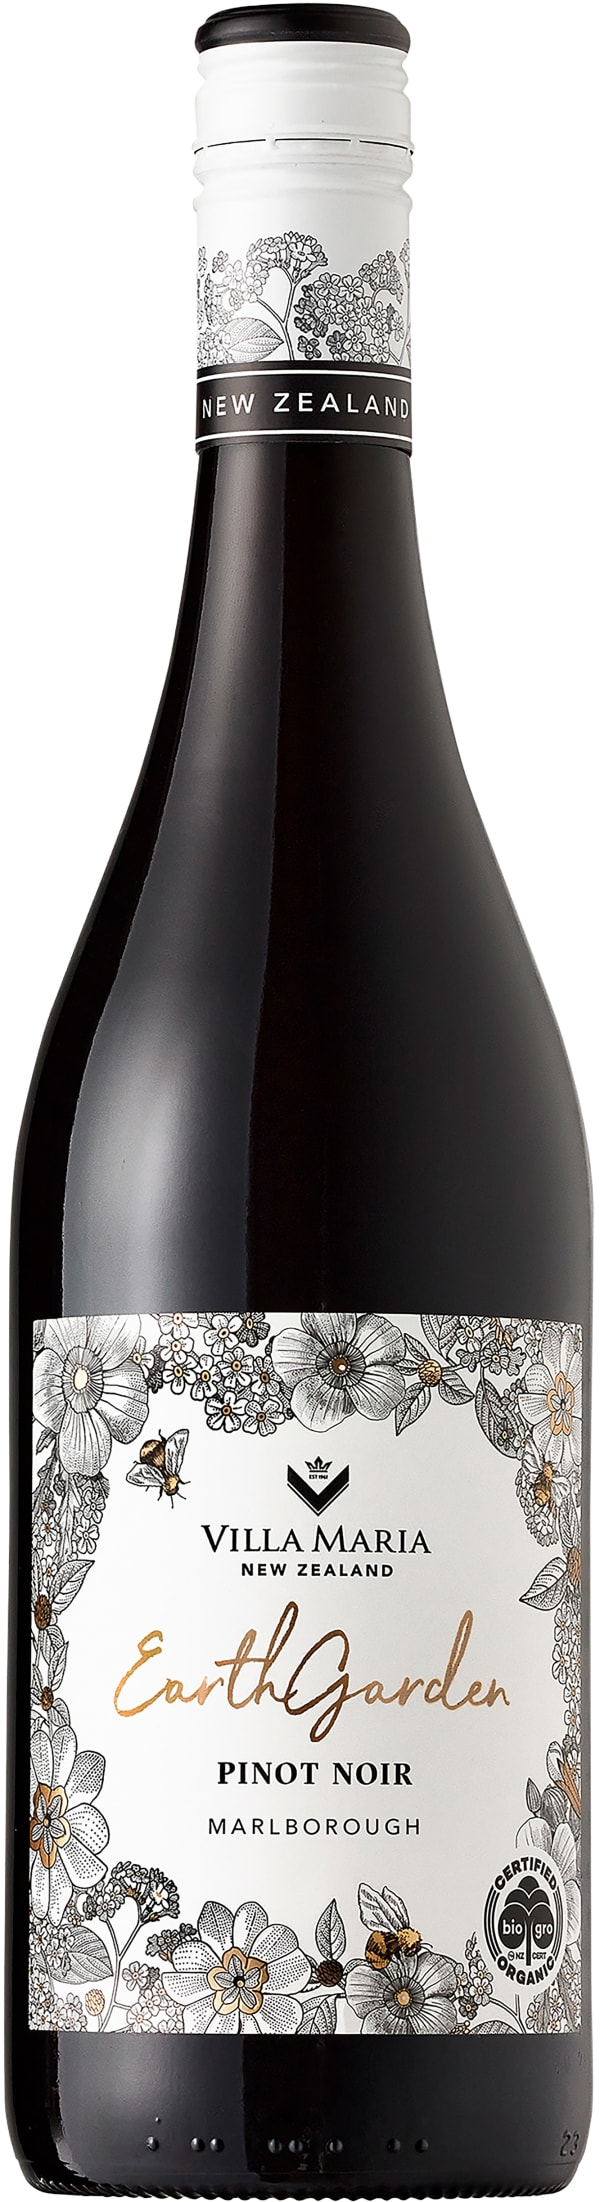 Villa Maria Cellar Selection Pinot Noir 2014